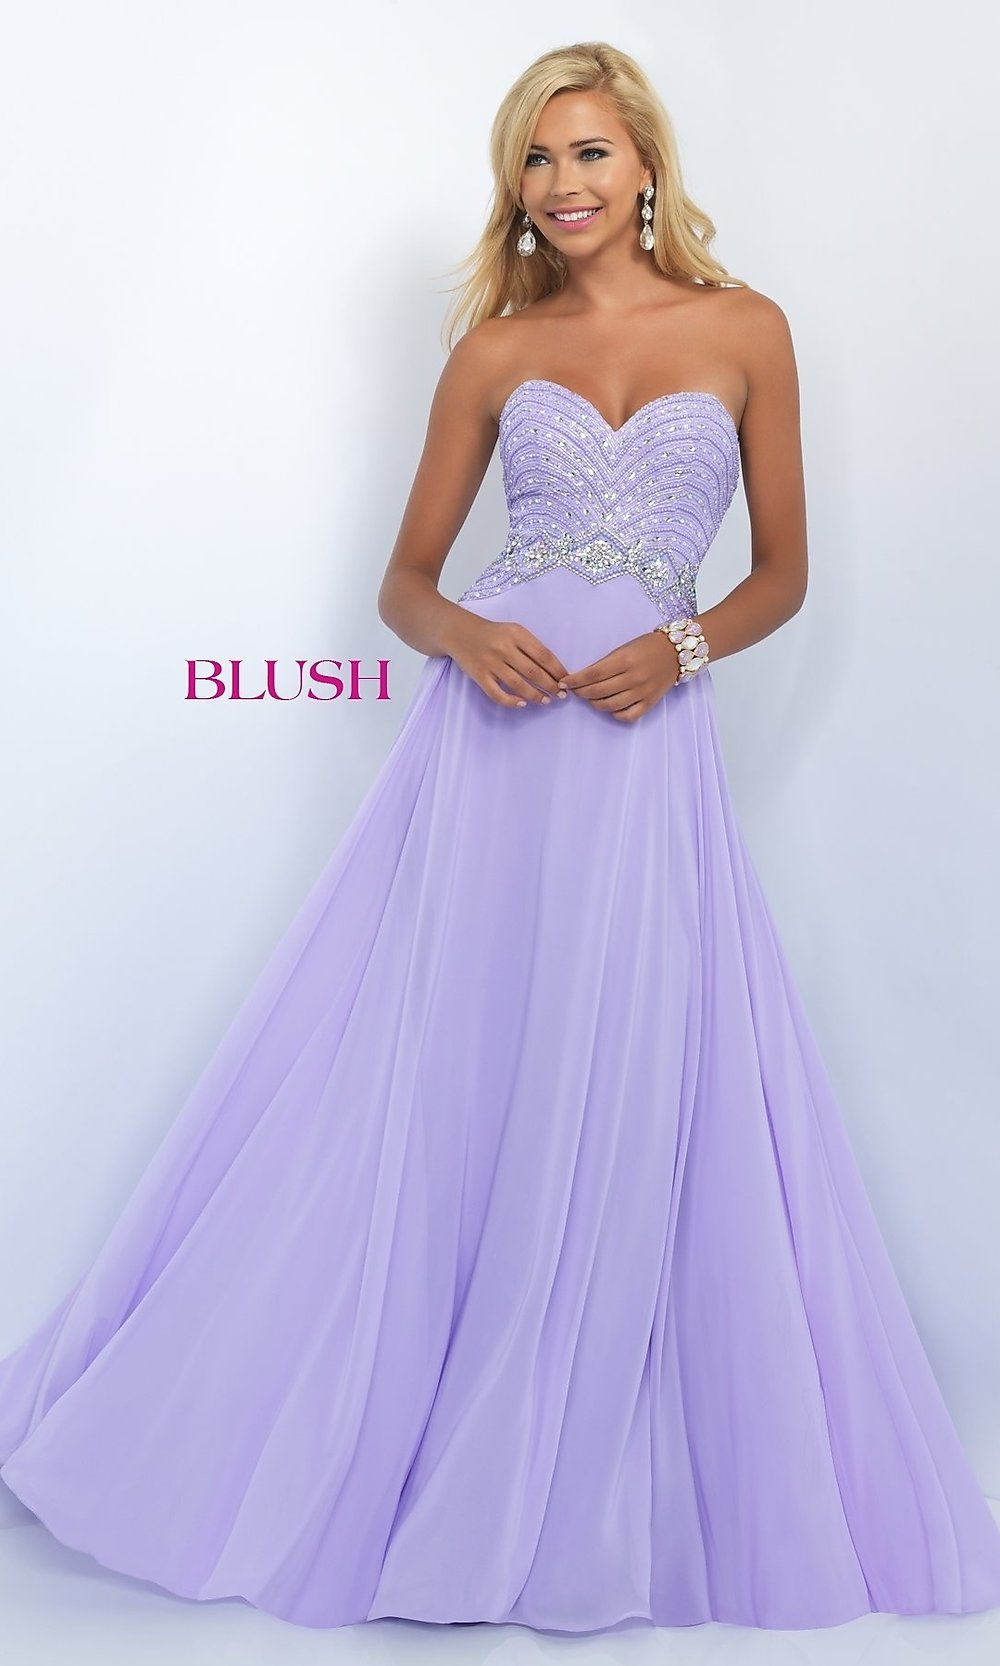 Wedding Lilac Prom Dresses long beaded strapless sweetheart prom dress promgirl hover to zoom